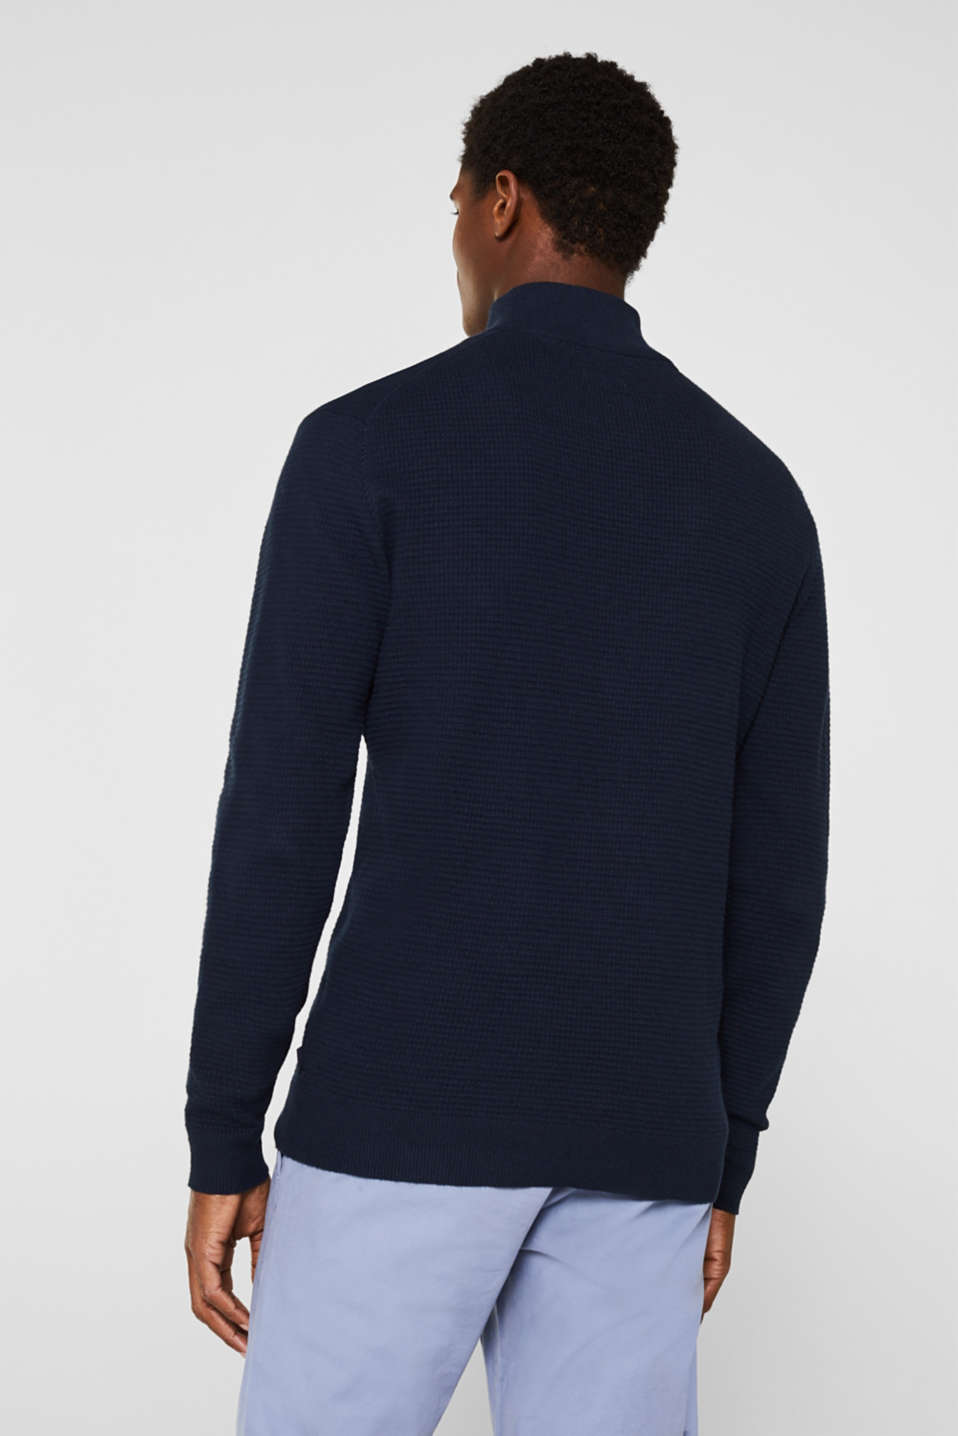 With cashmere: Textured knit jumper, NAVY, detail image number 3